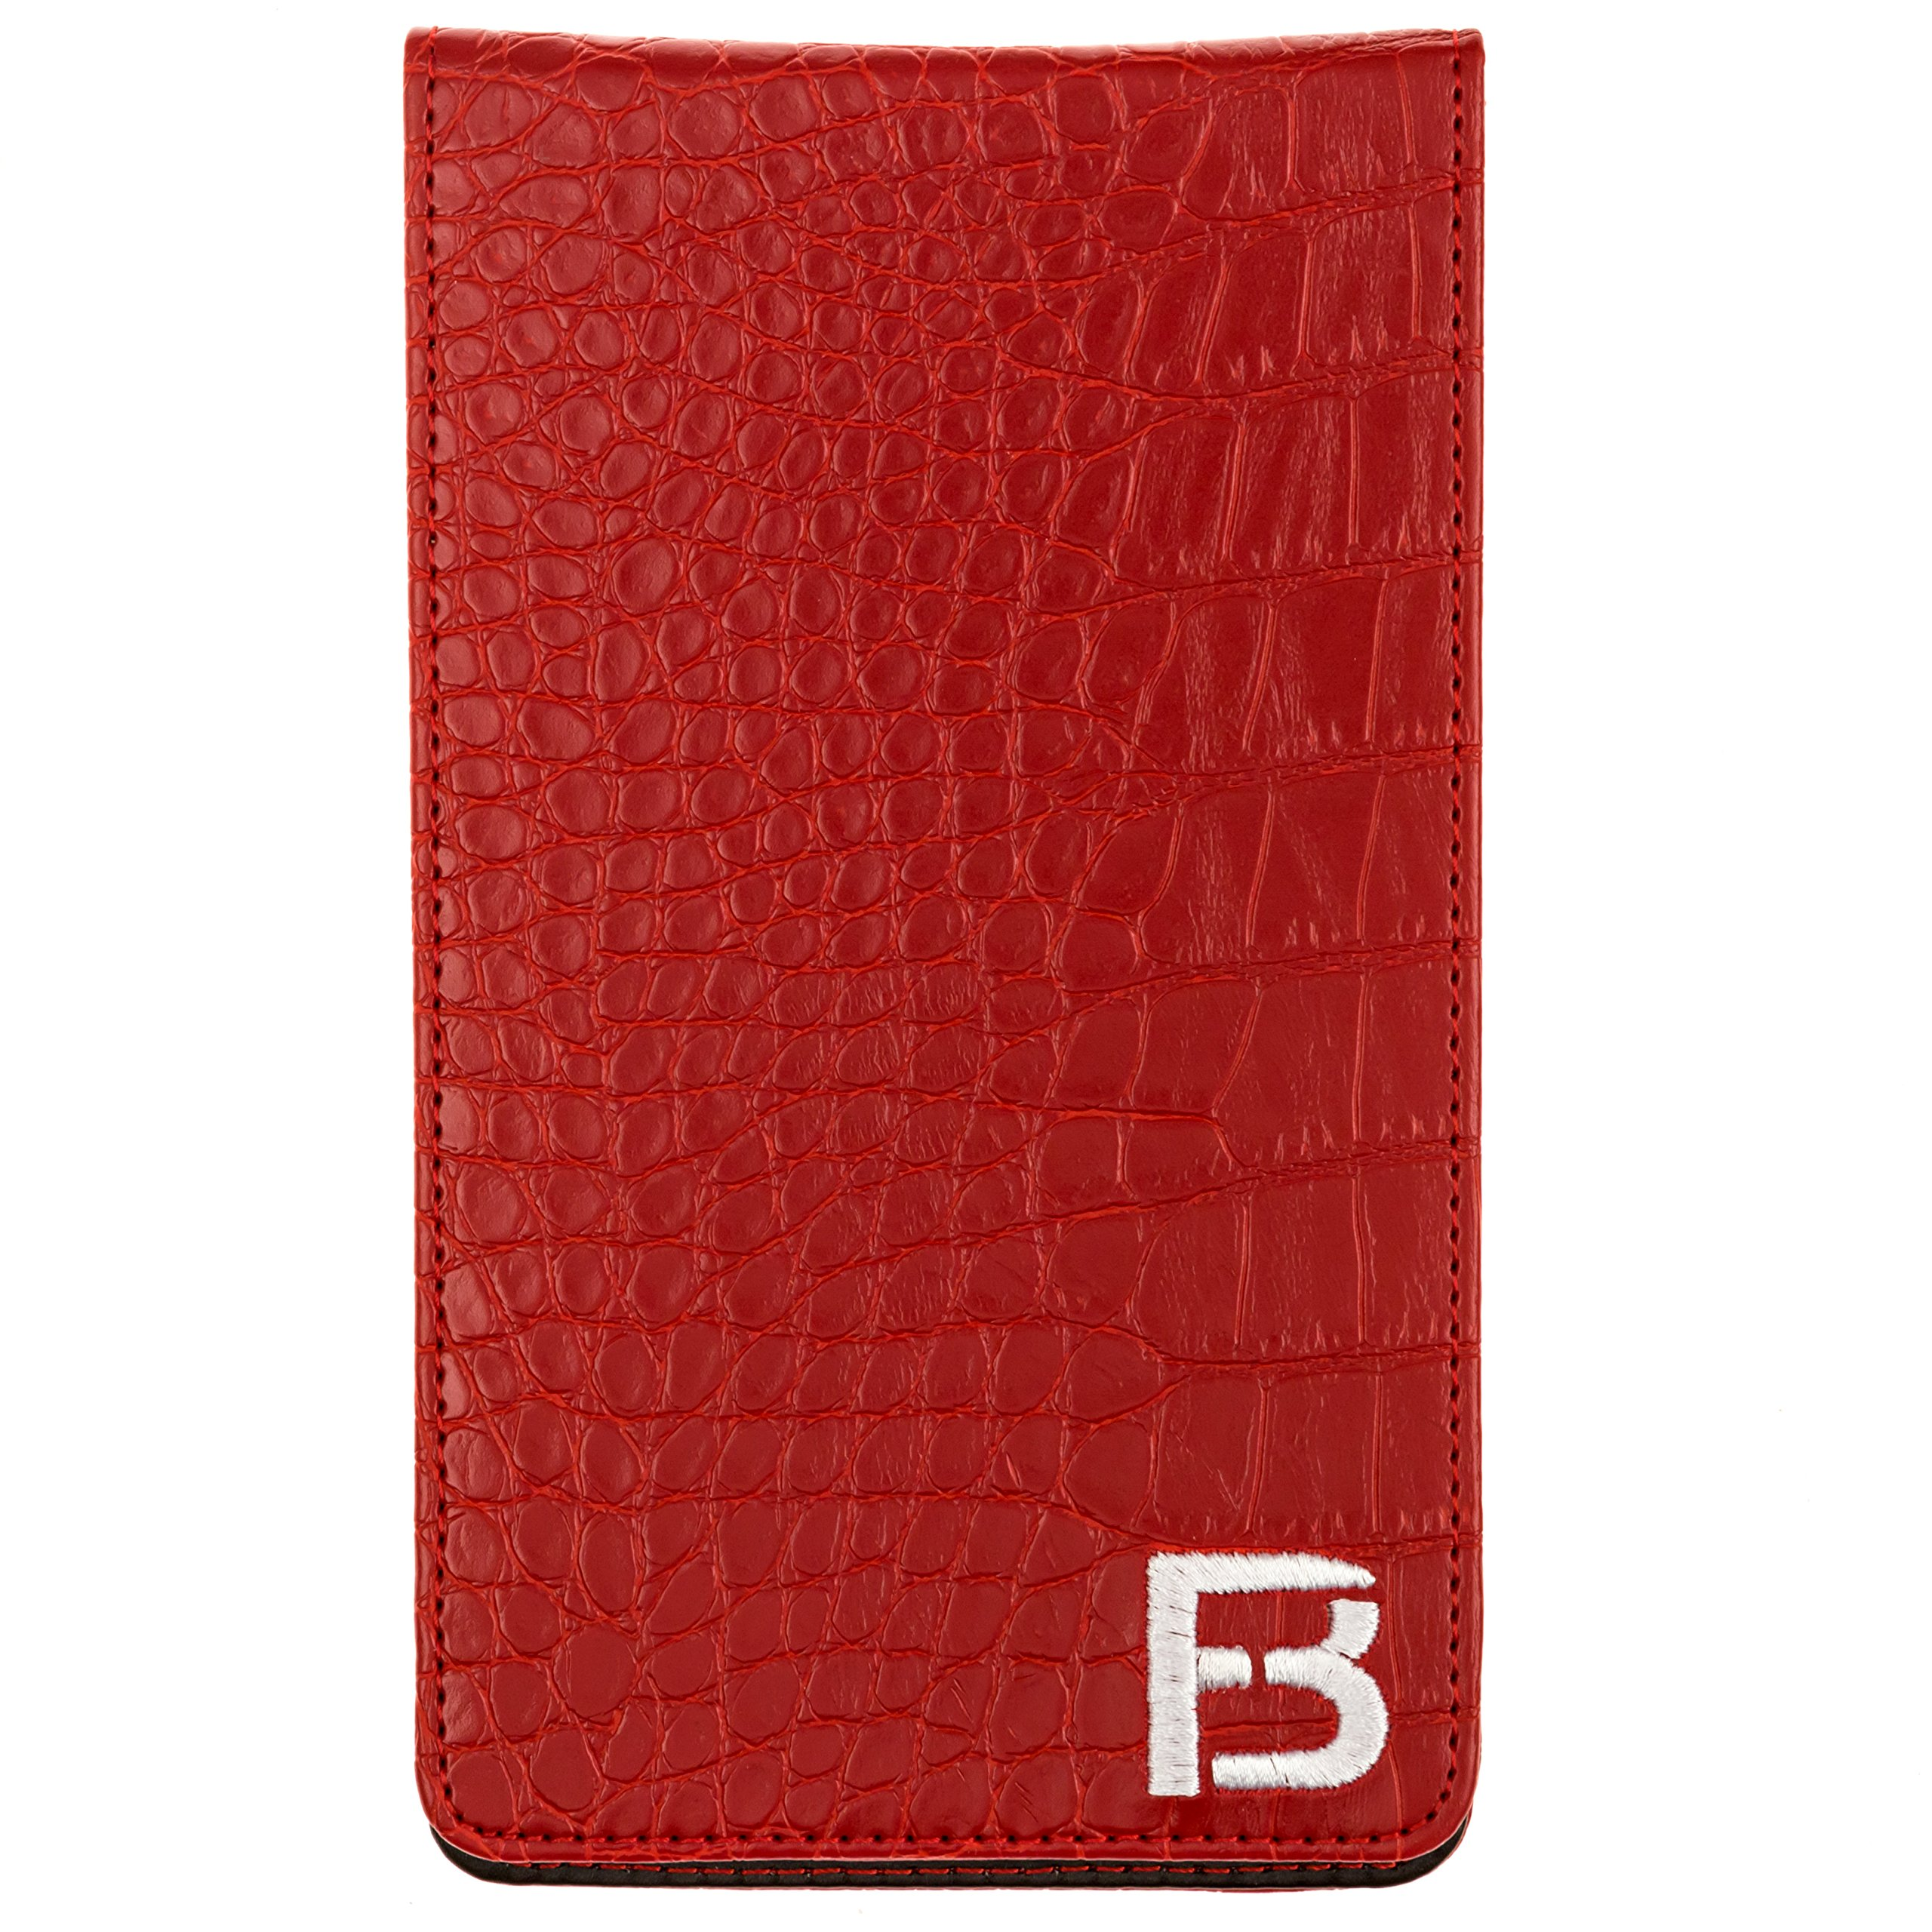 Fuzzy Bunkers Golf Scorecard Holder and Yardage Book Cover PLUS Free Golf Pencil and Downloadable PDF Stat Tracker Sheet by (Red) by VEBE (Image #5)